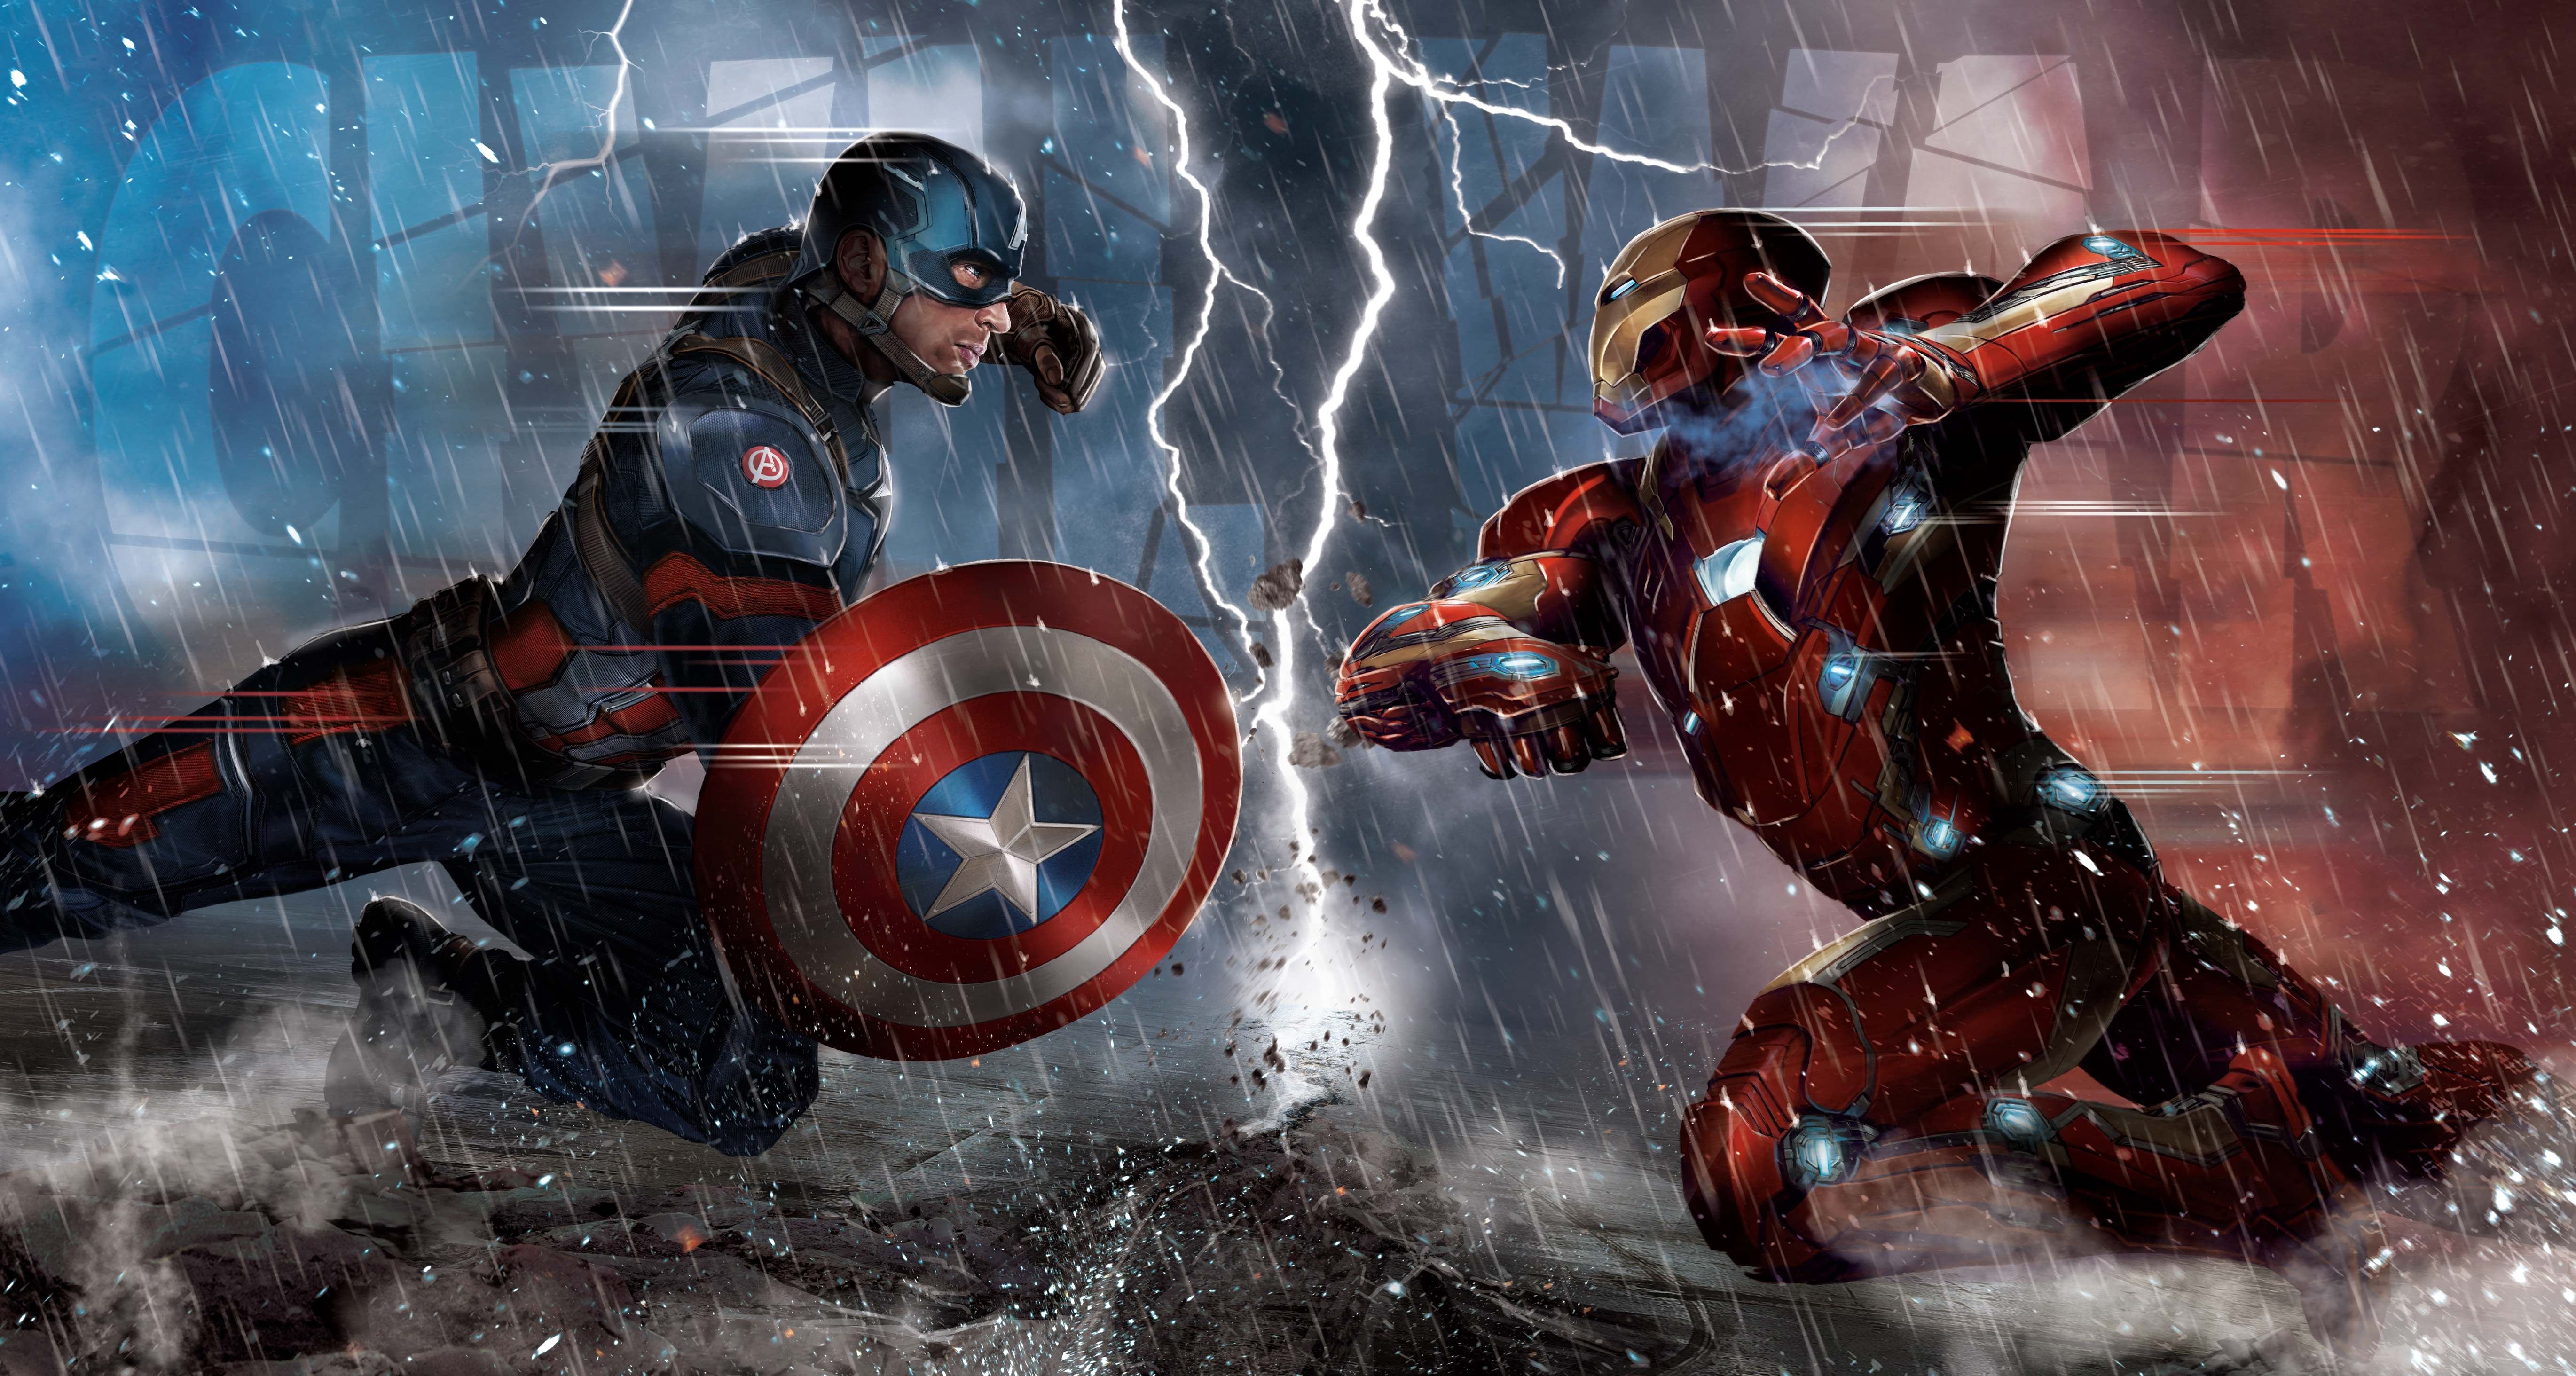 109 Captain America Civil War HD Wallpapers Background Images 5480x2927